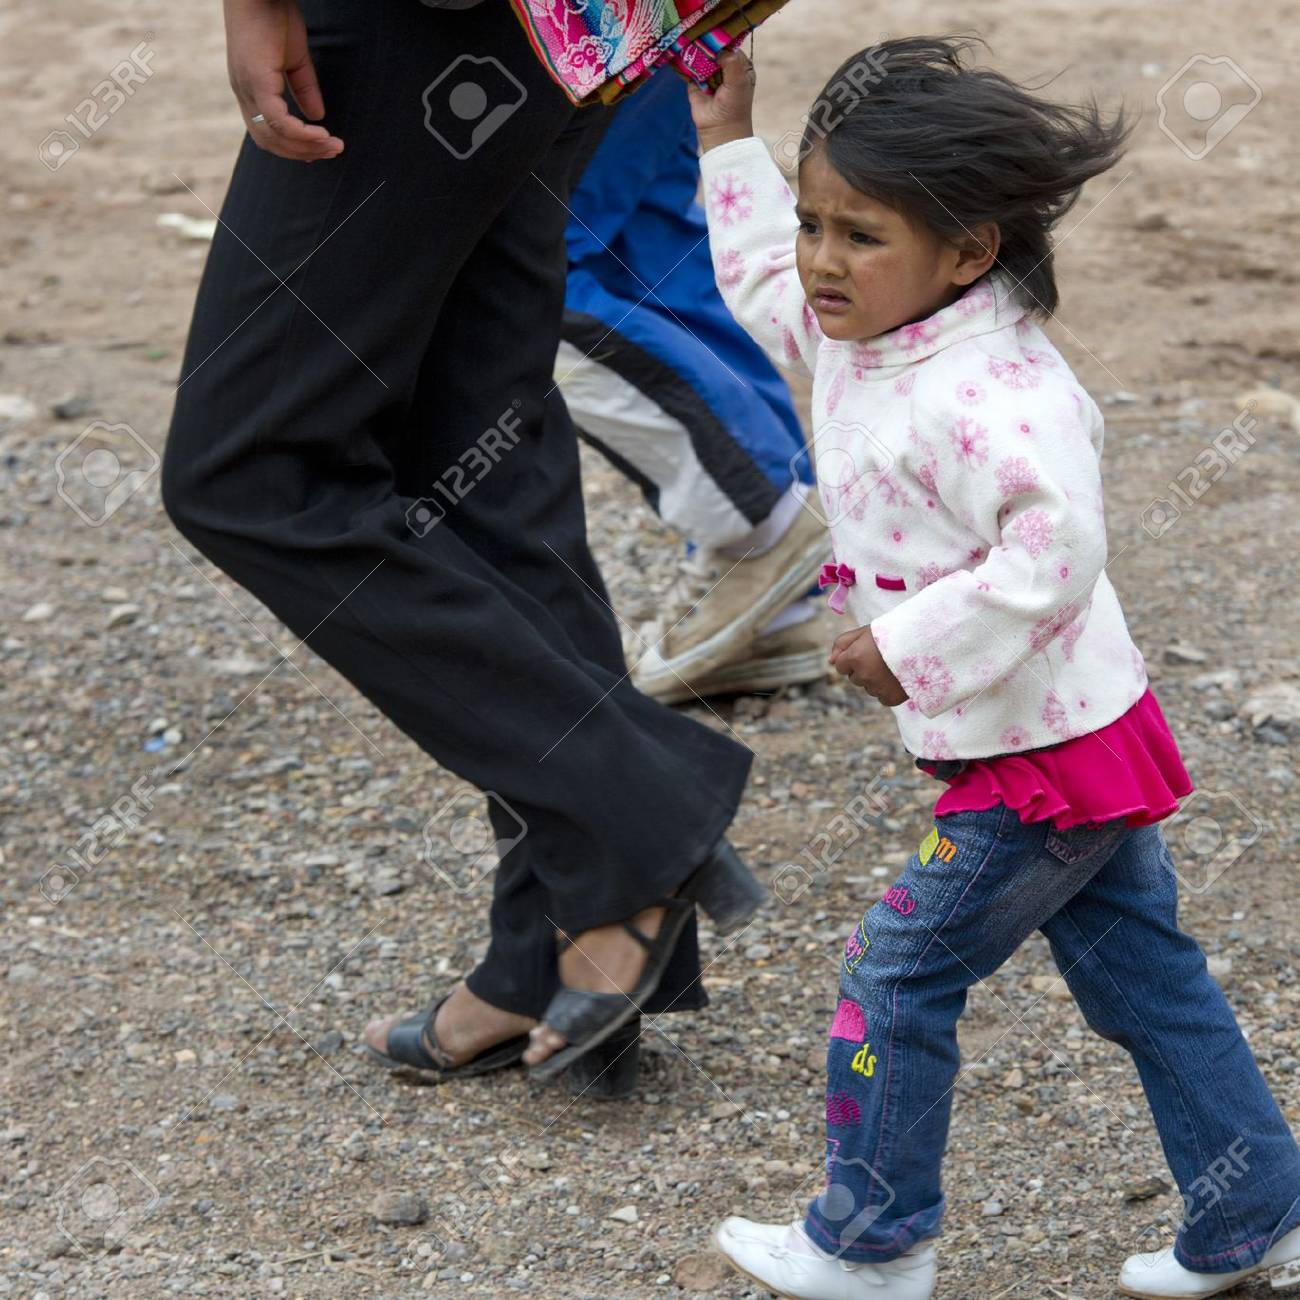 Girl walking with her parents, Sacred Valley, Cusco Region, Peru Stock Photo - 17227816